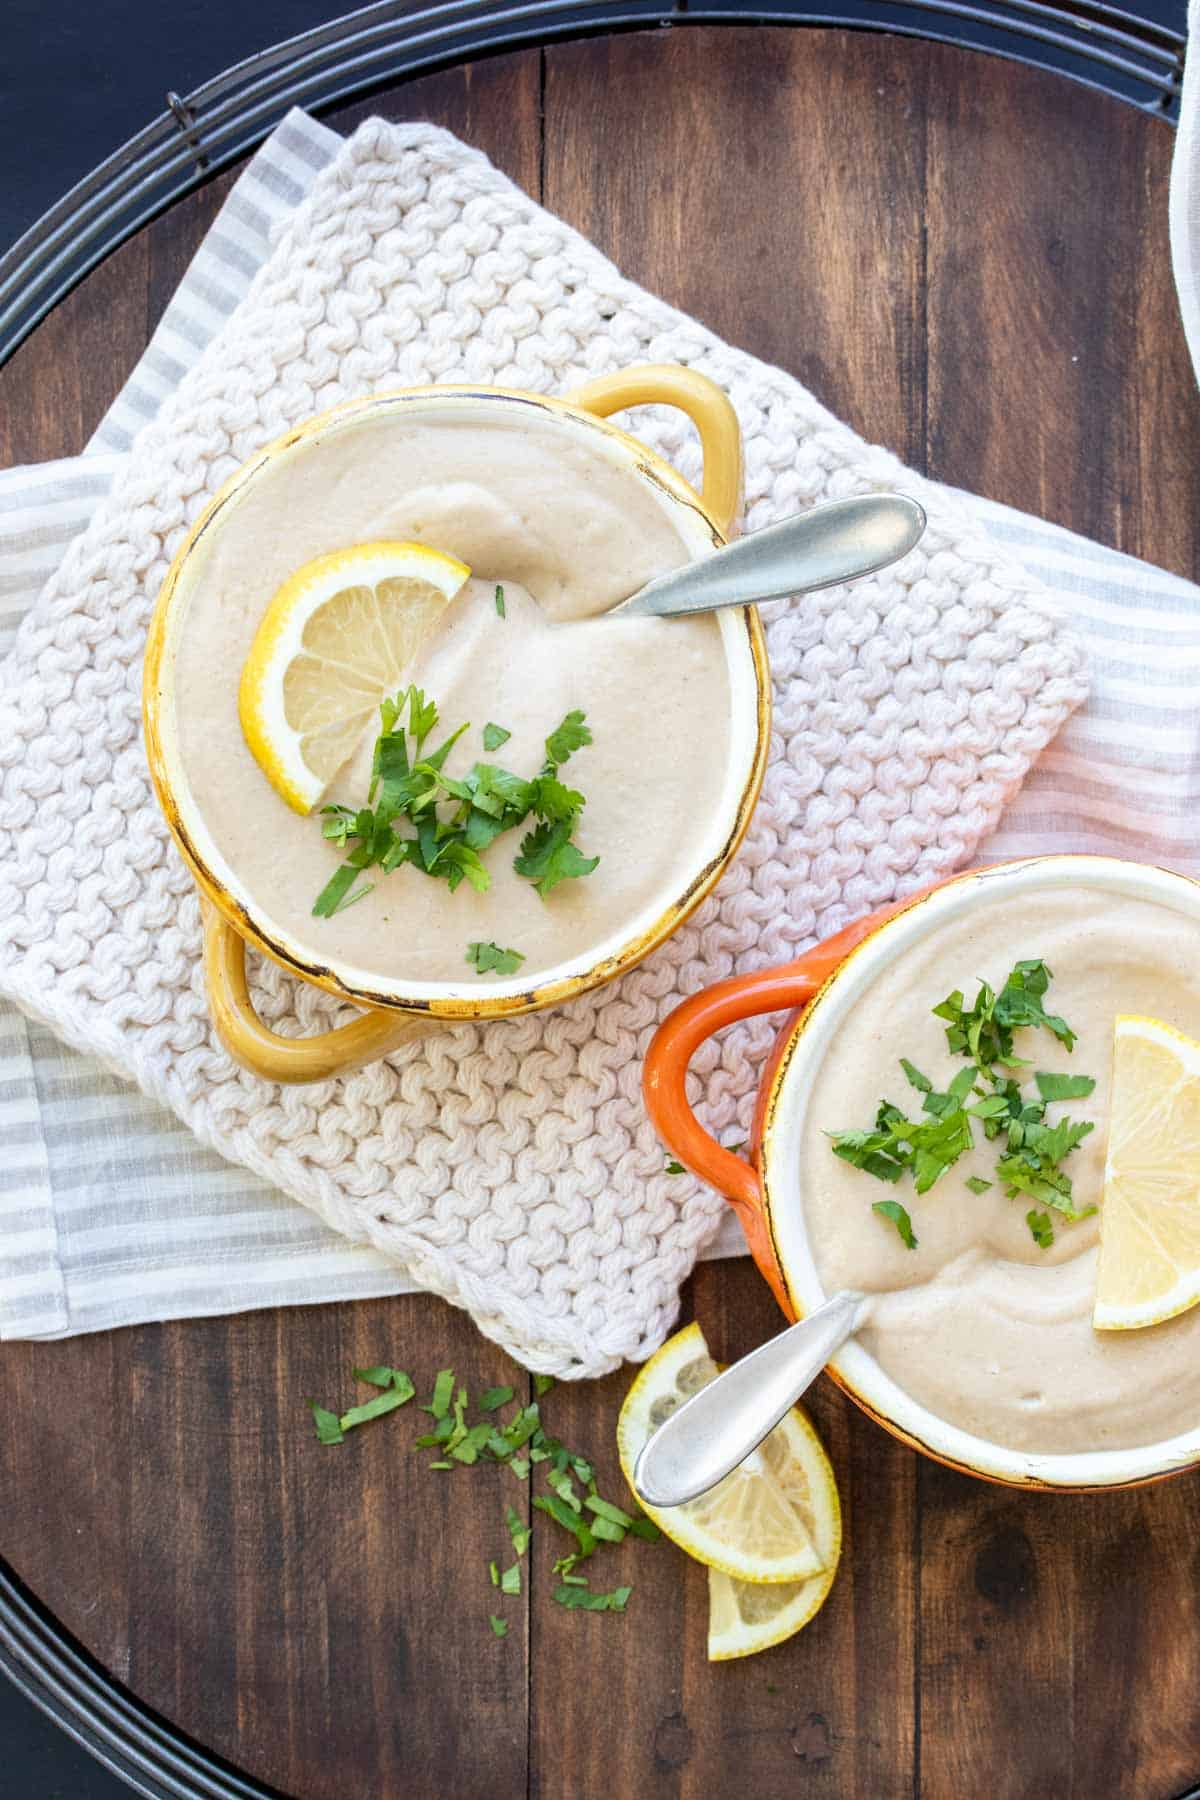 Two soup bowls with pureed cauliflower soup topped with parsley and lemon